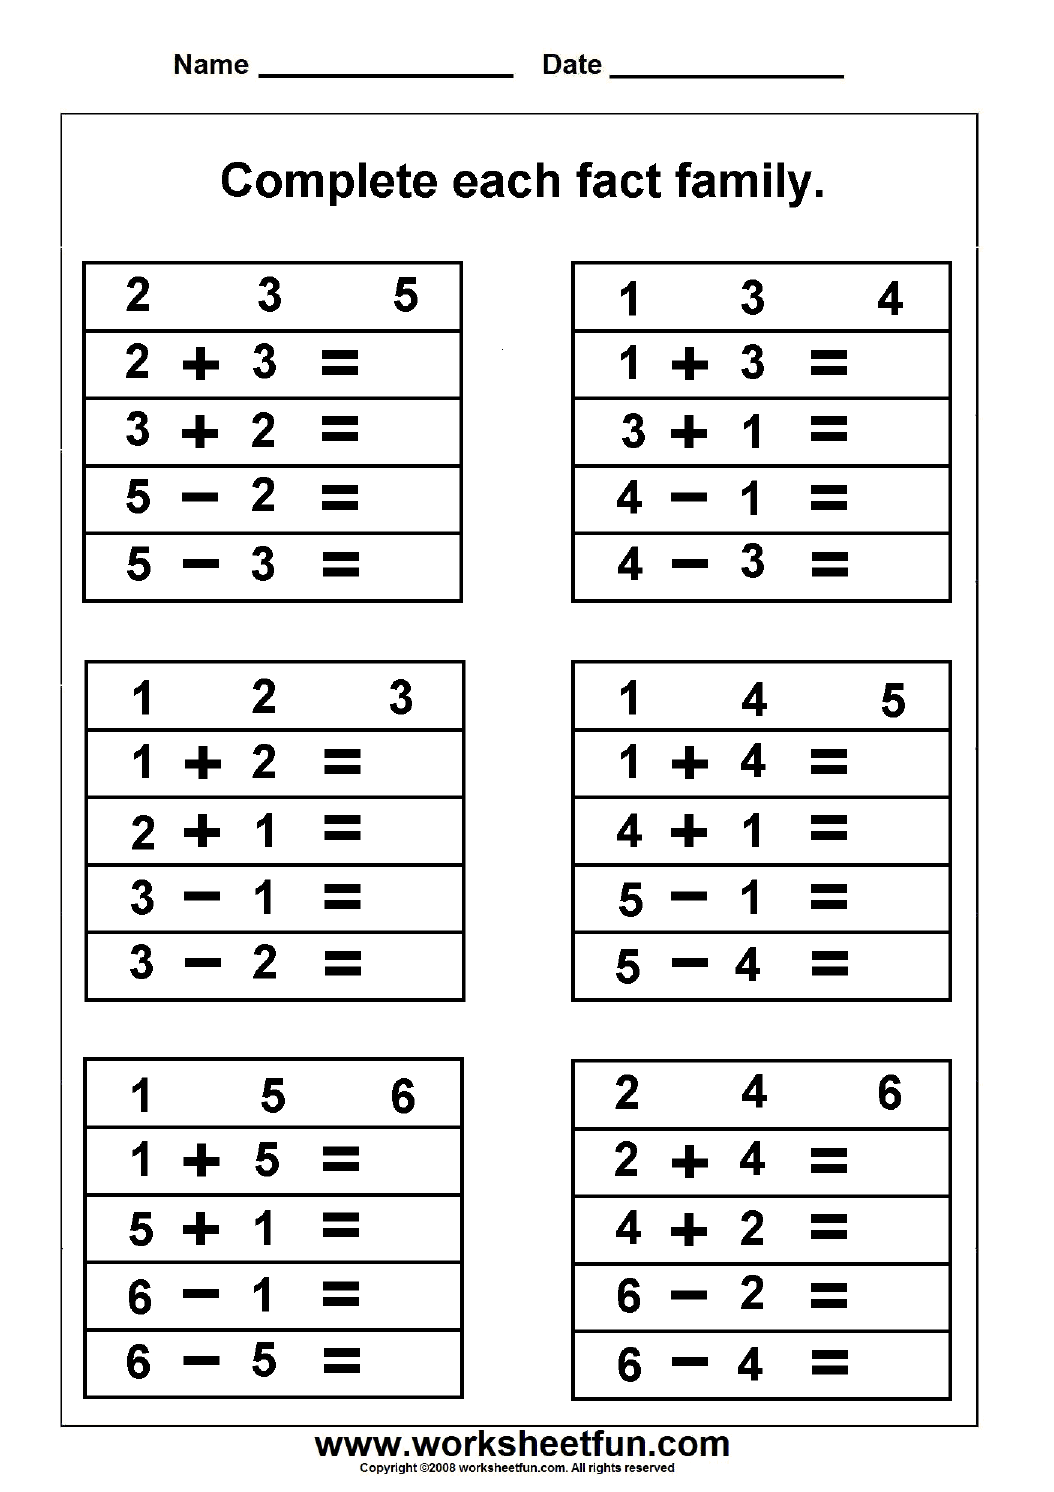 Numbers Fact Family FREE Printable Worksheets Worksheetfun – Division Fact Family Worksheets